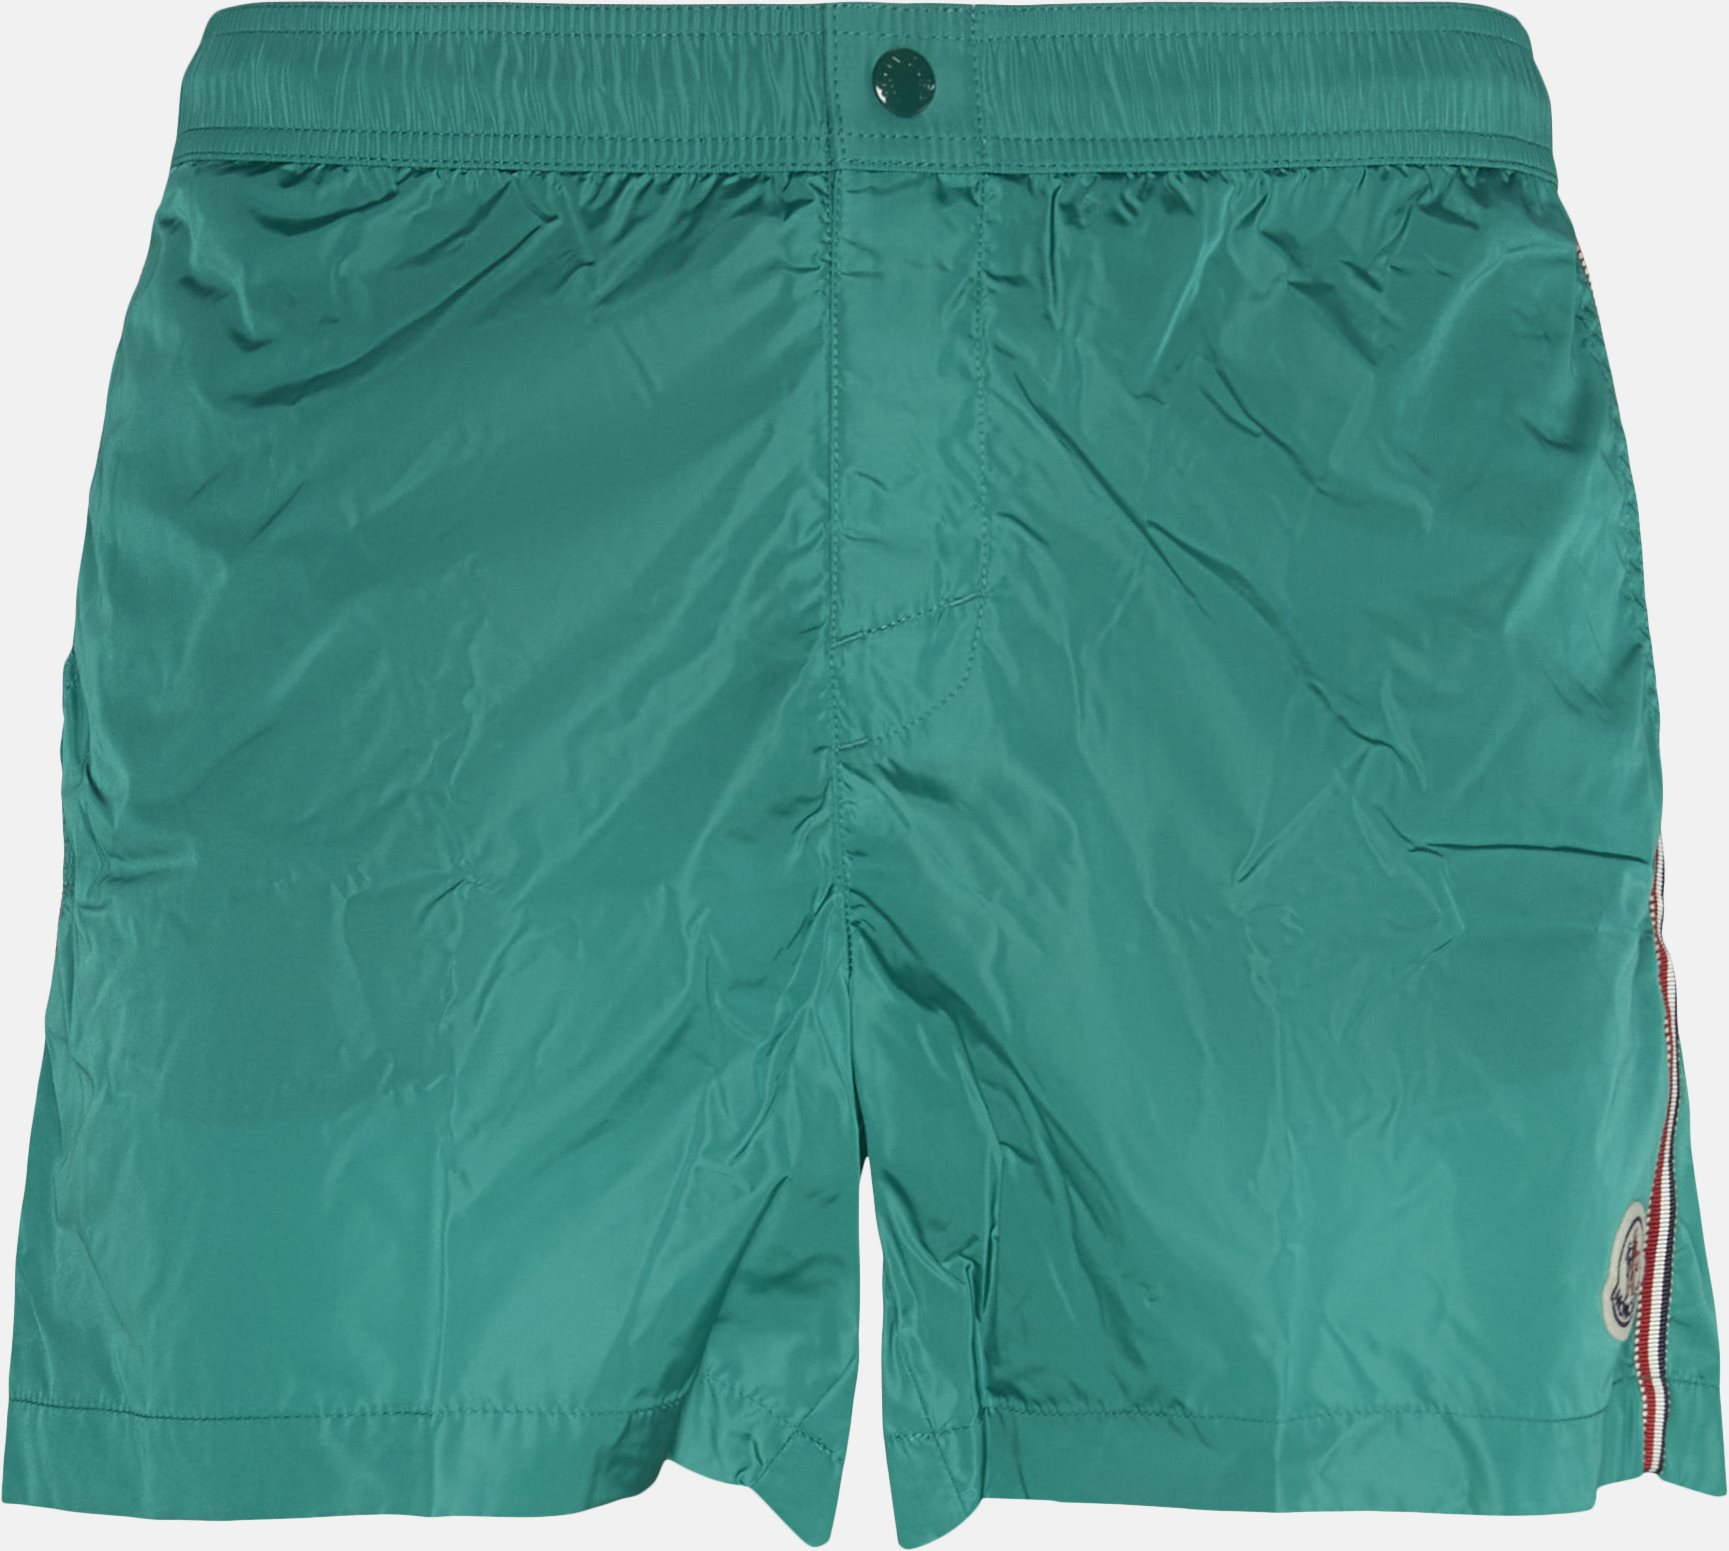 Badeshorts - Shorts - Regular - Grøn